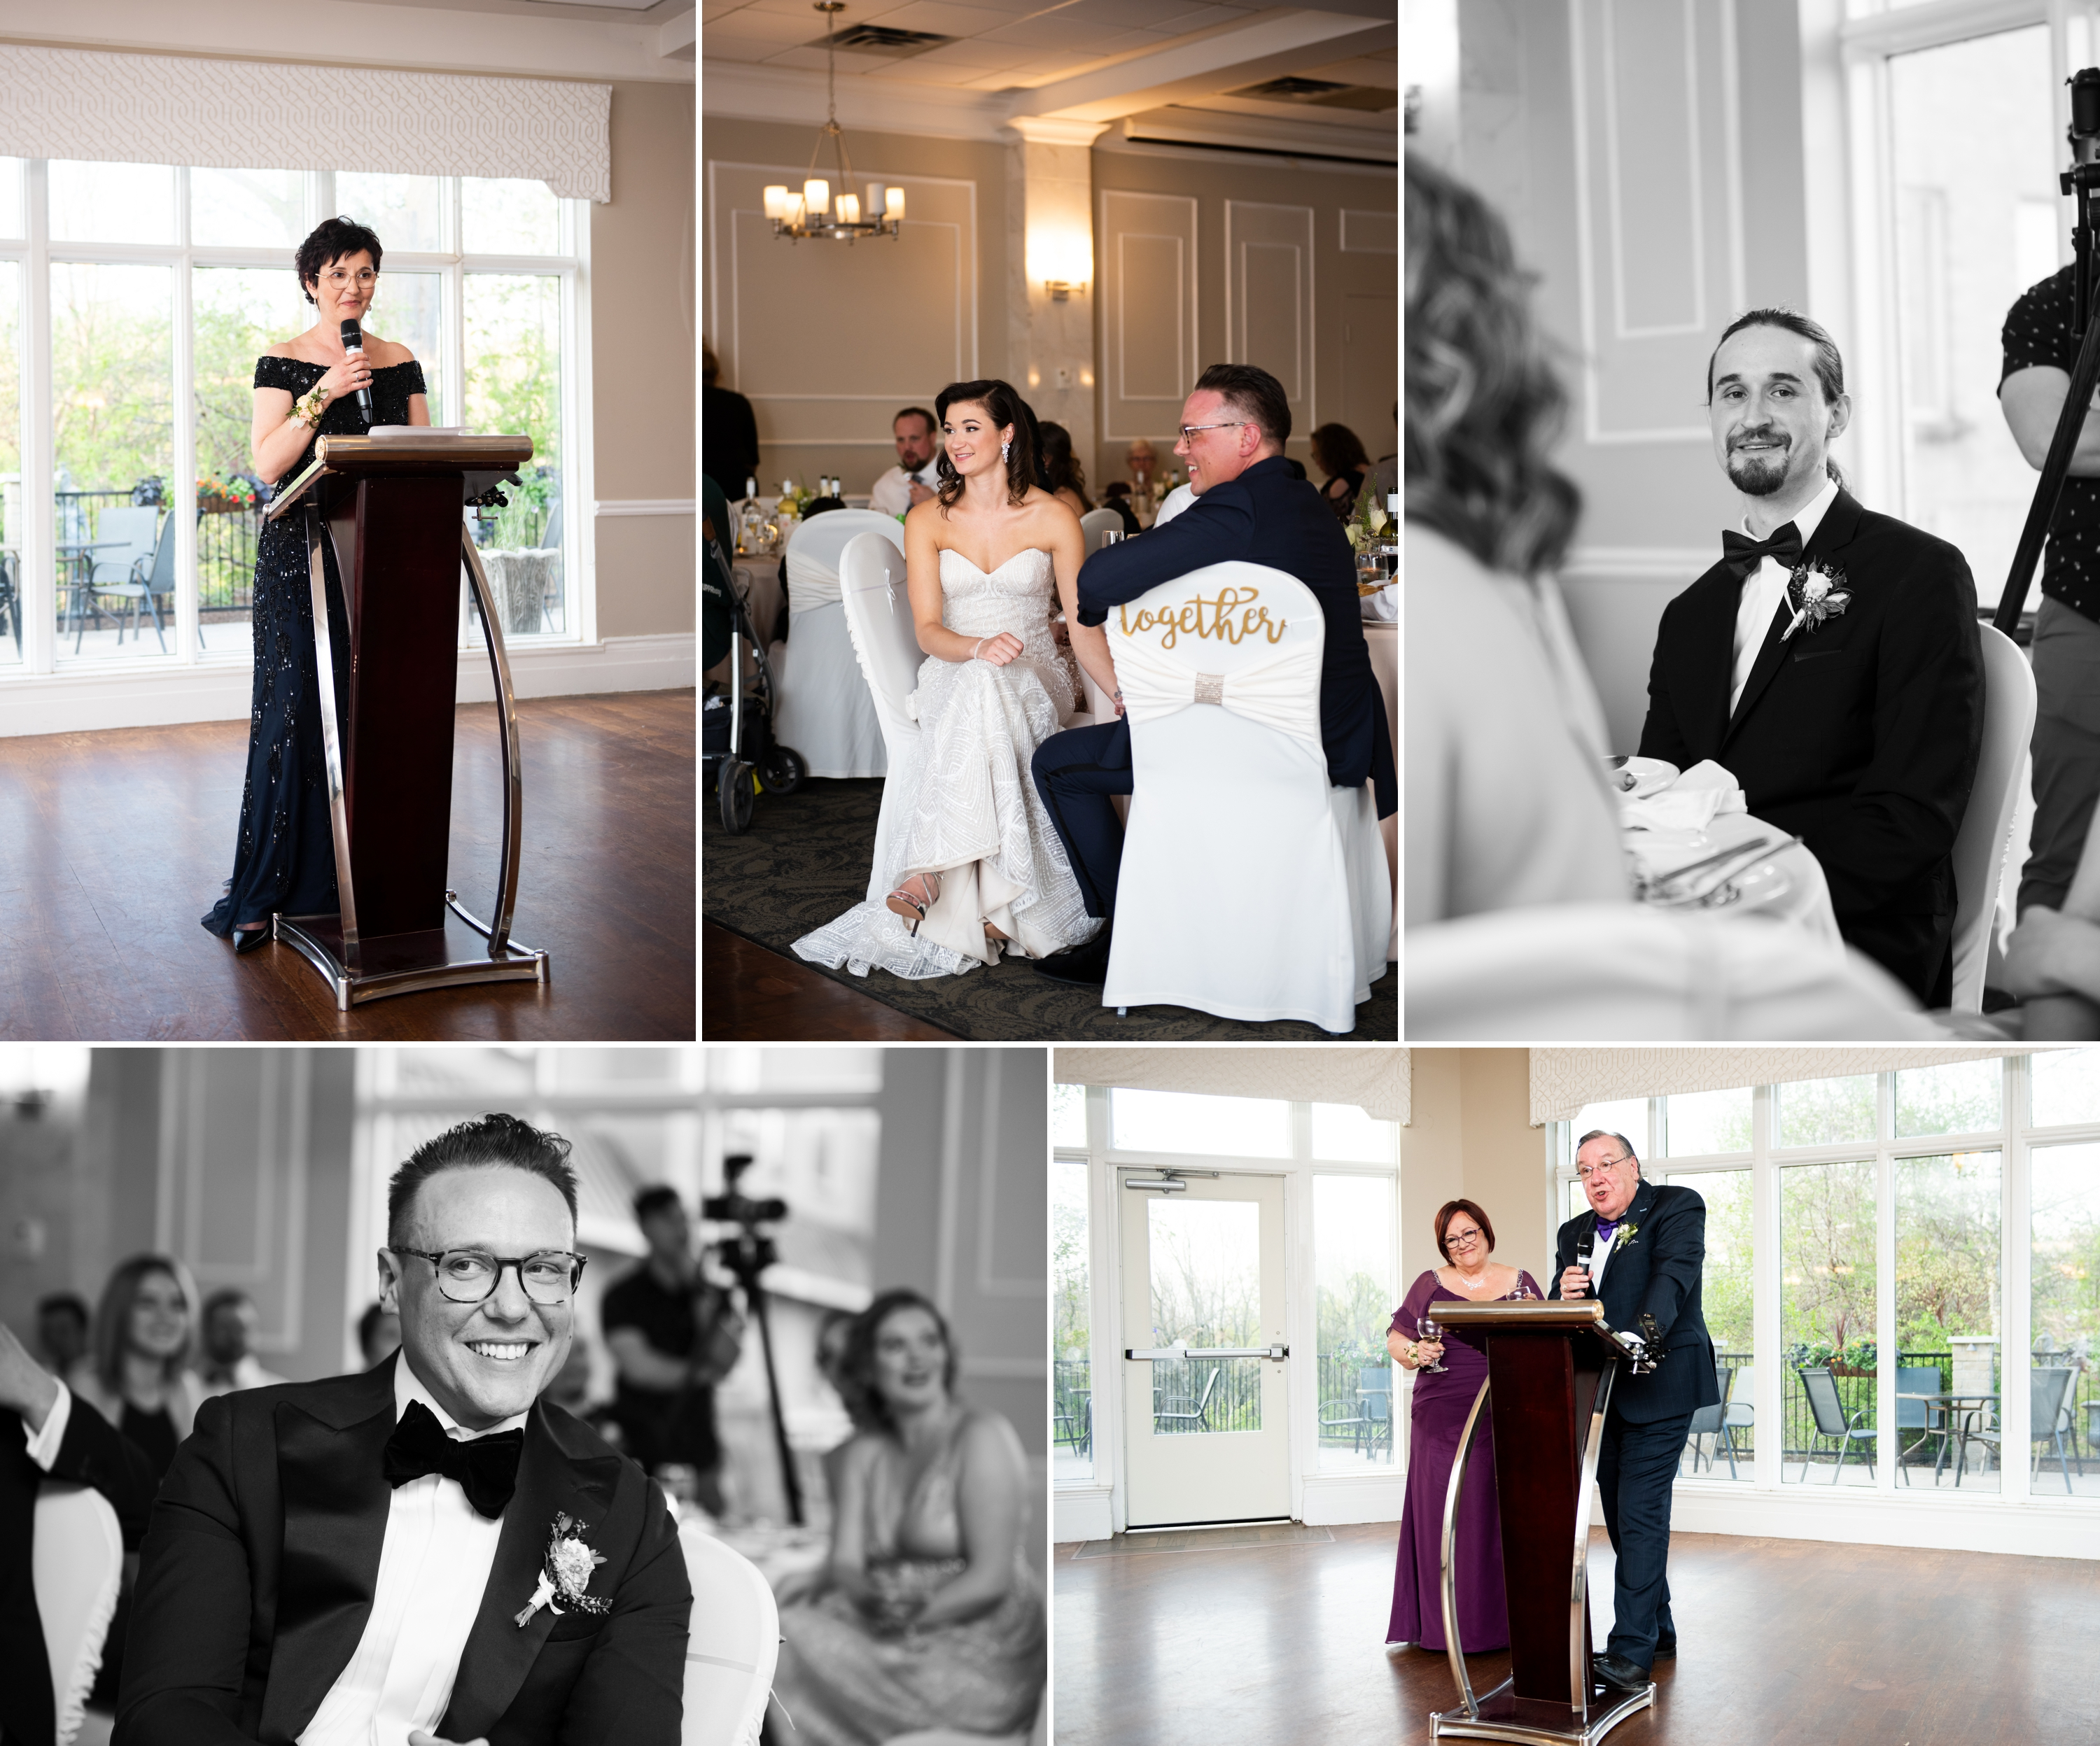 Speeches Parents Josh Zsuzsi Pal Photography Wedding Elmhurst Inn Studio Lumen